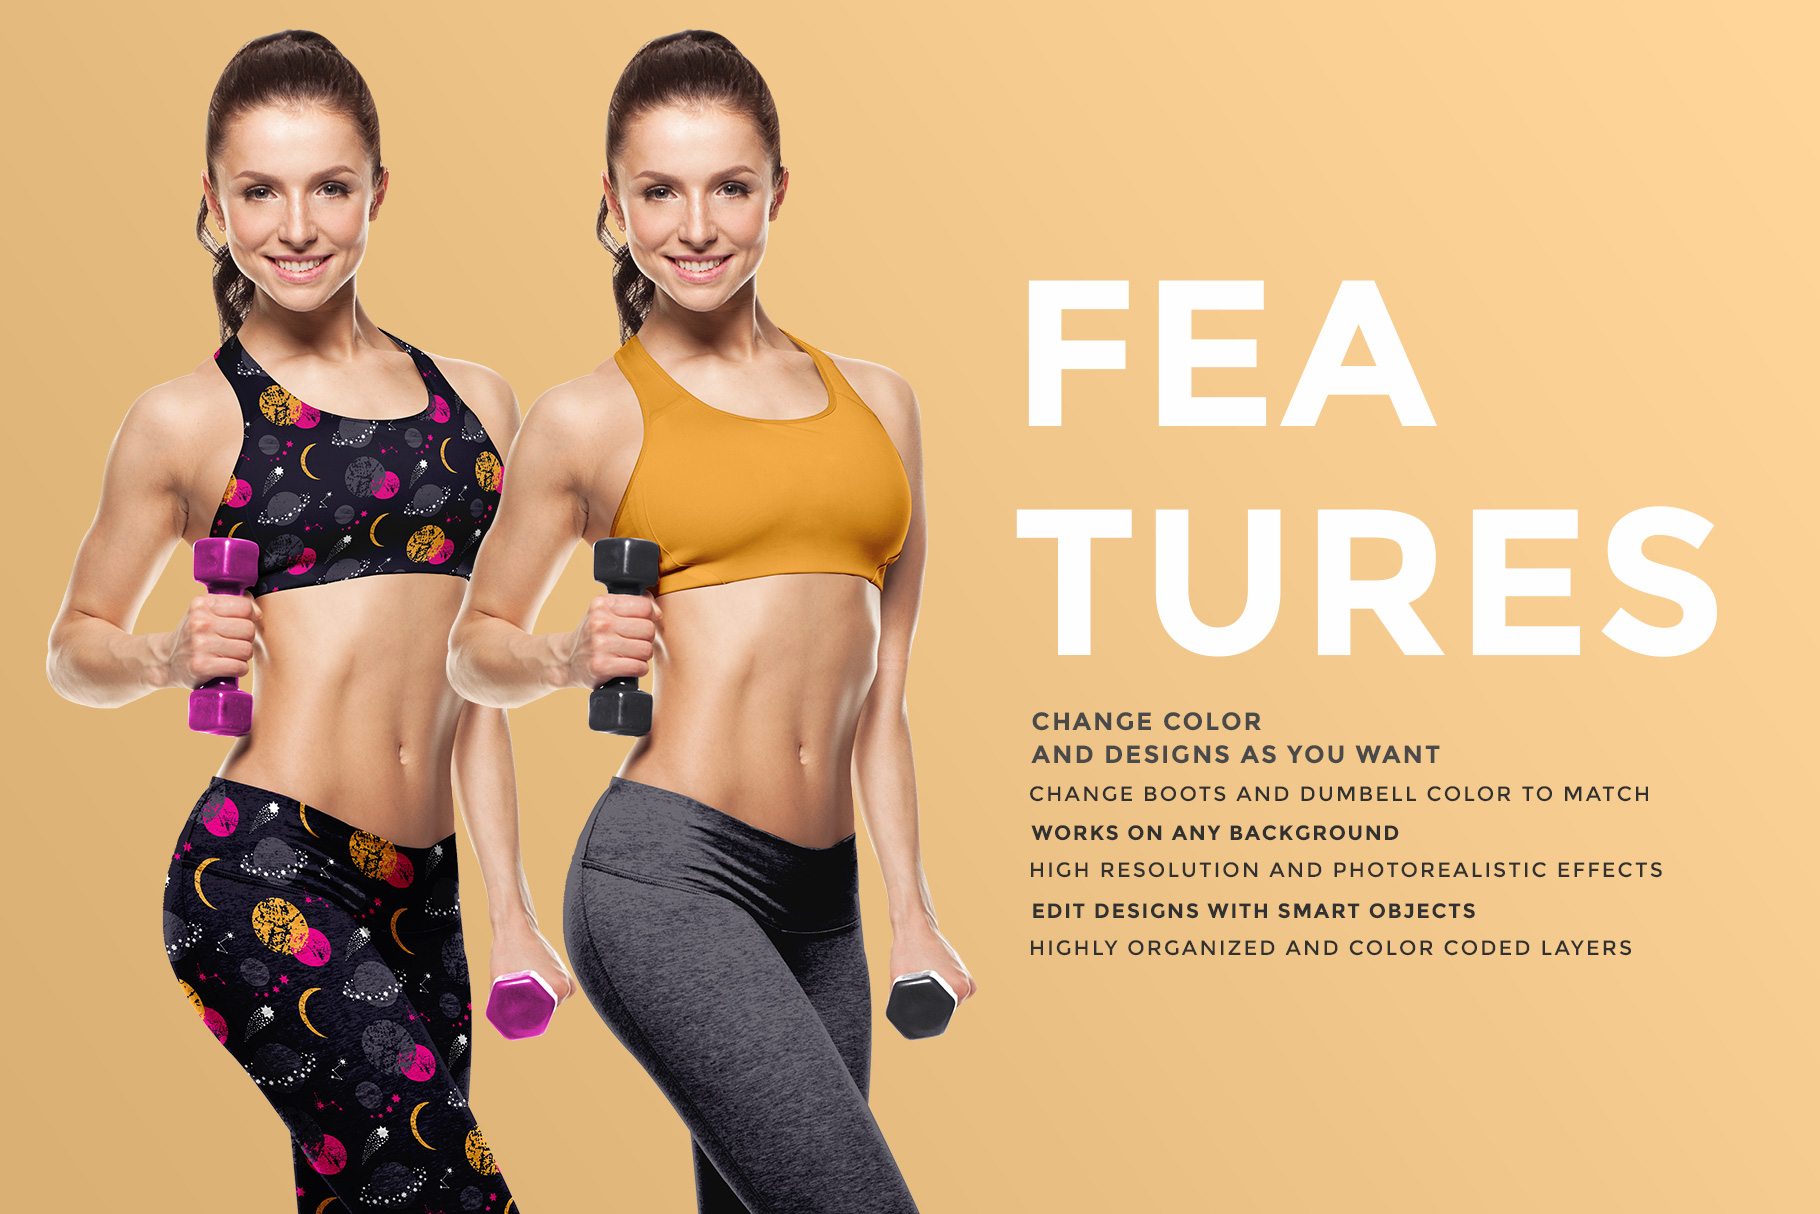 features of the female fitness outfit mockup